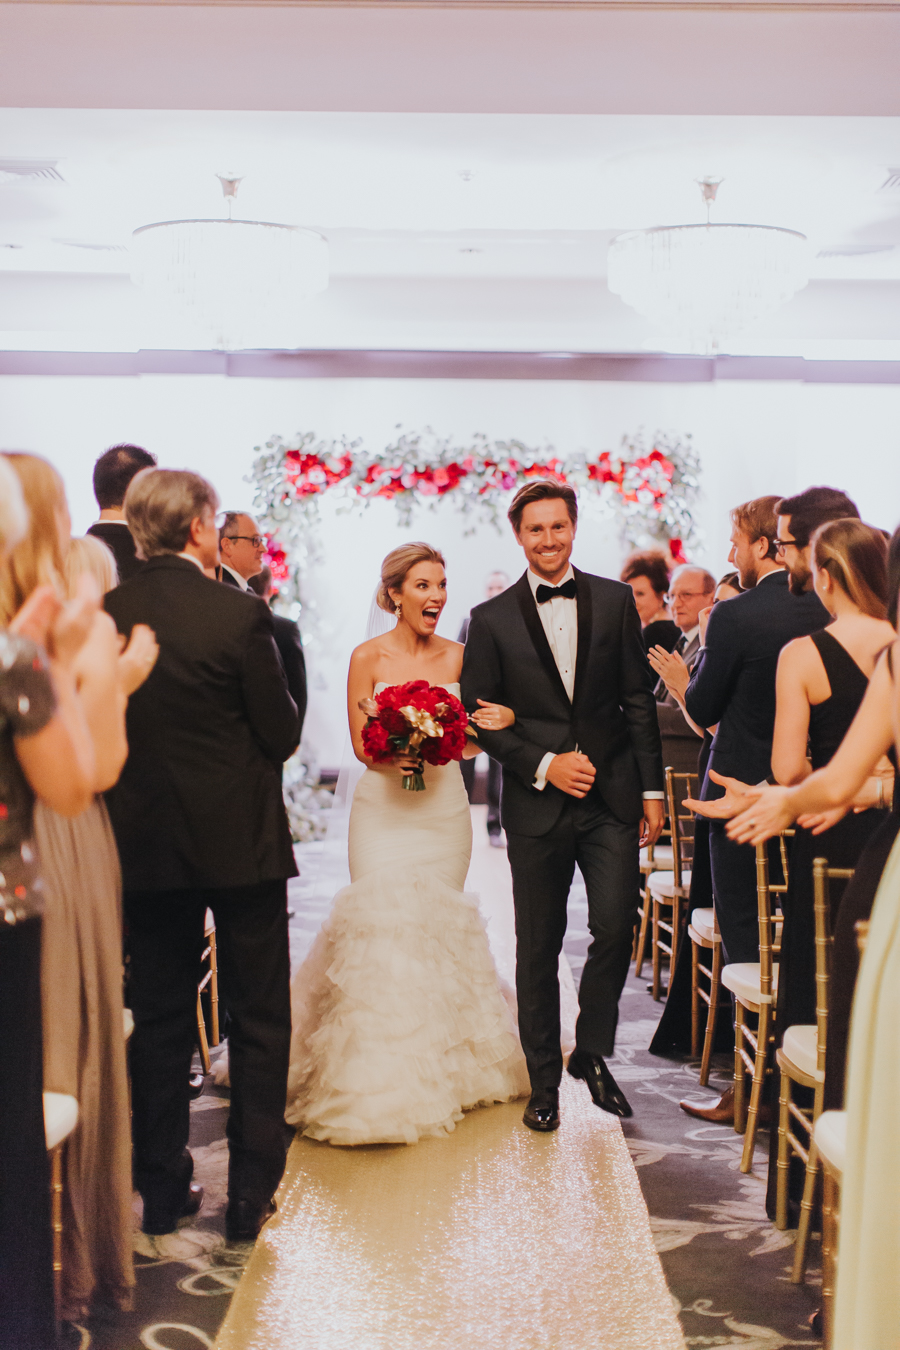 Loren and Alex Kuznetsov Gold and Burgundy wedding at Epicurean Tampa Royal Fall Wedding in Tampa Florida Inside Weddings MD Events Tampa-71.jpg